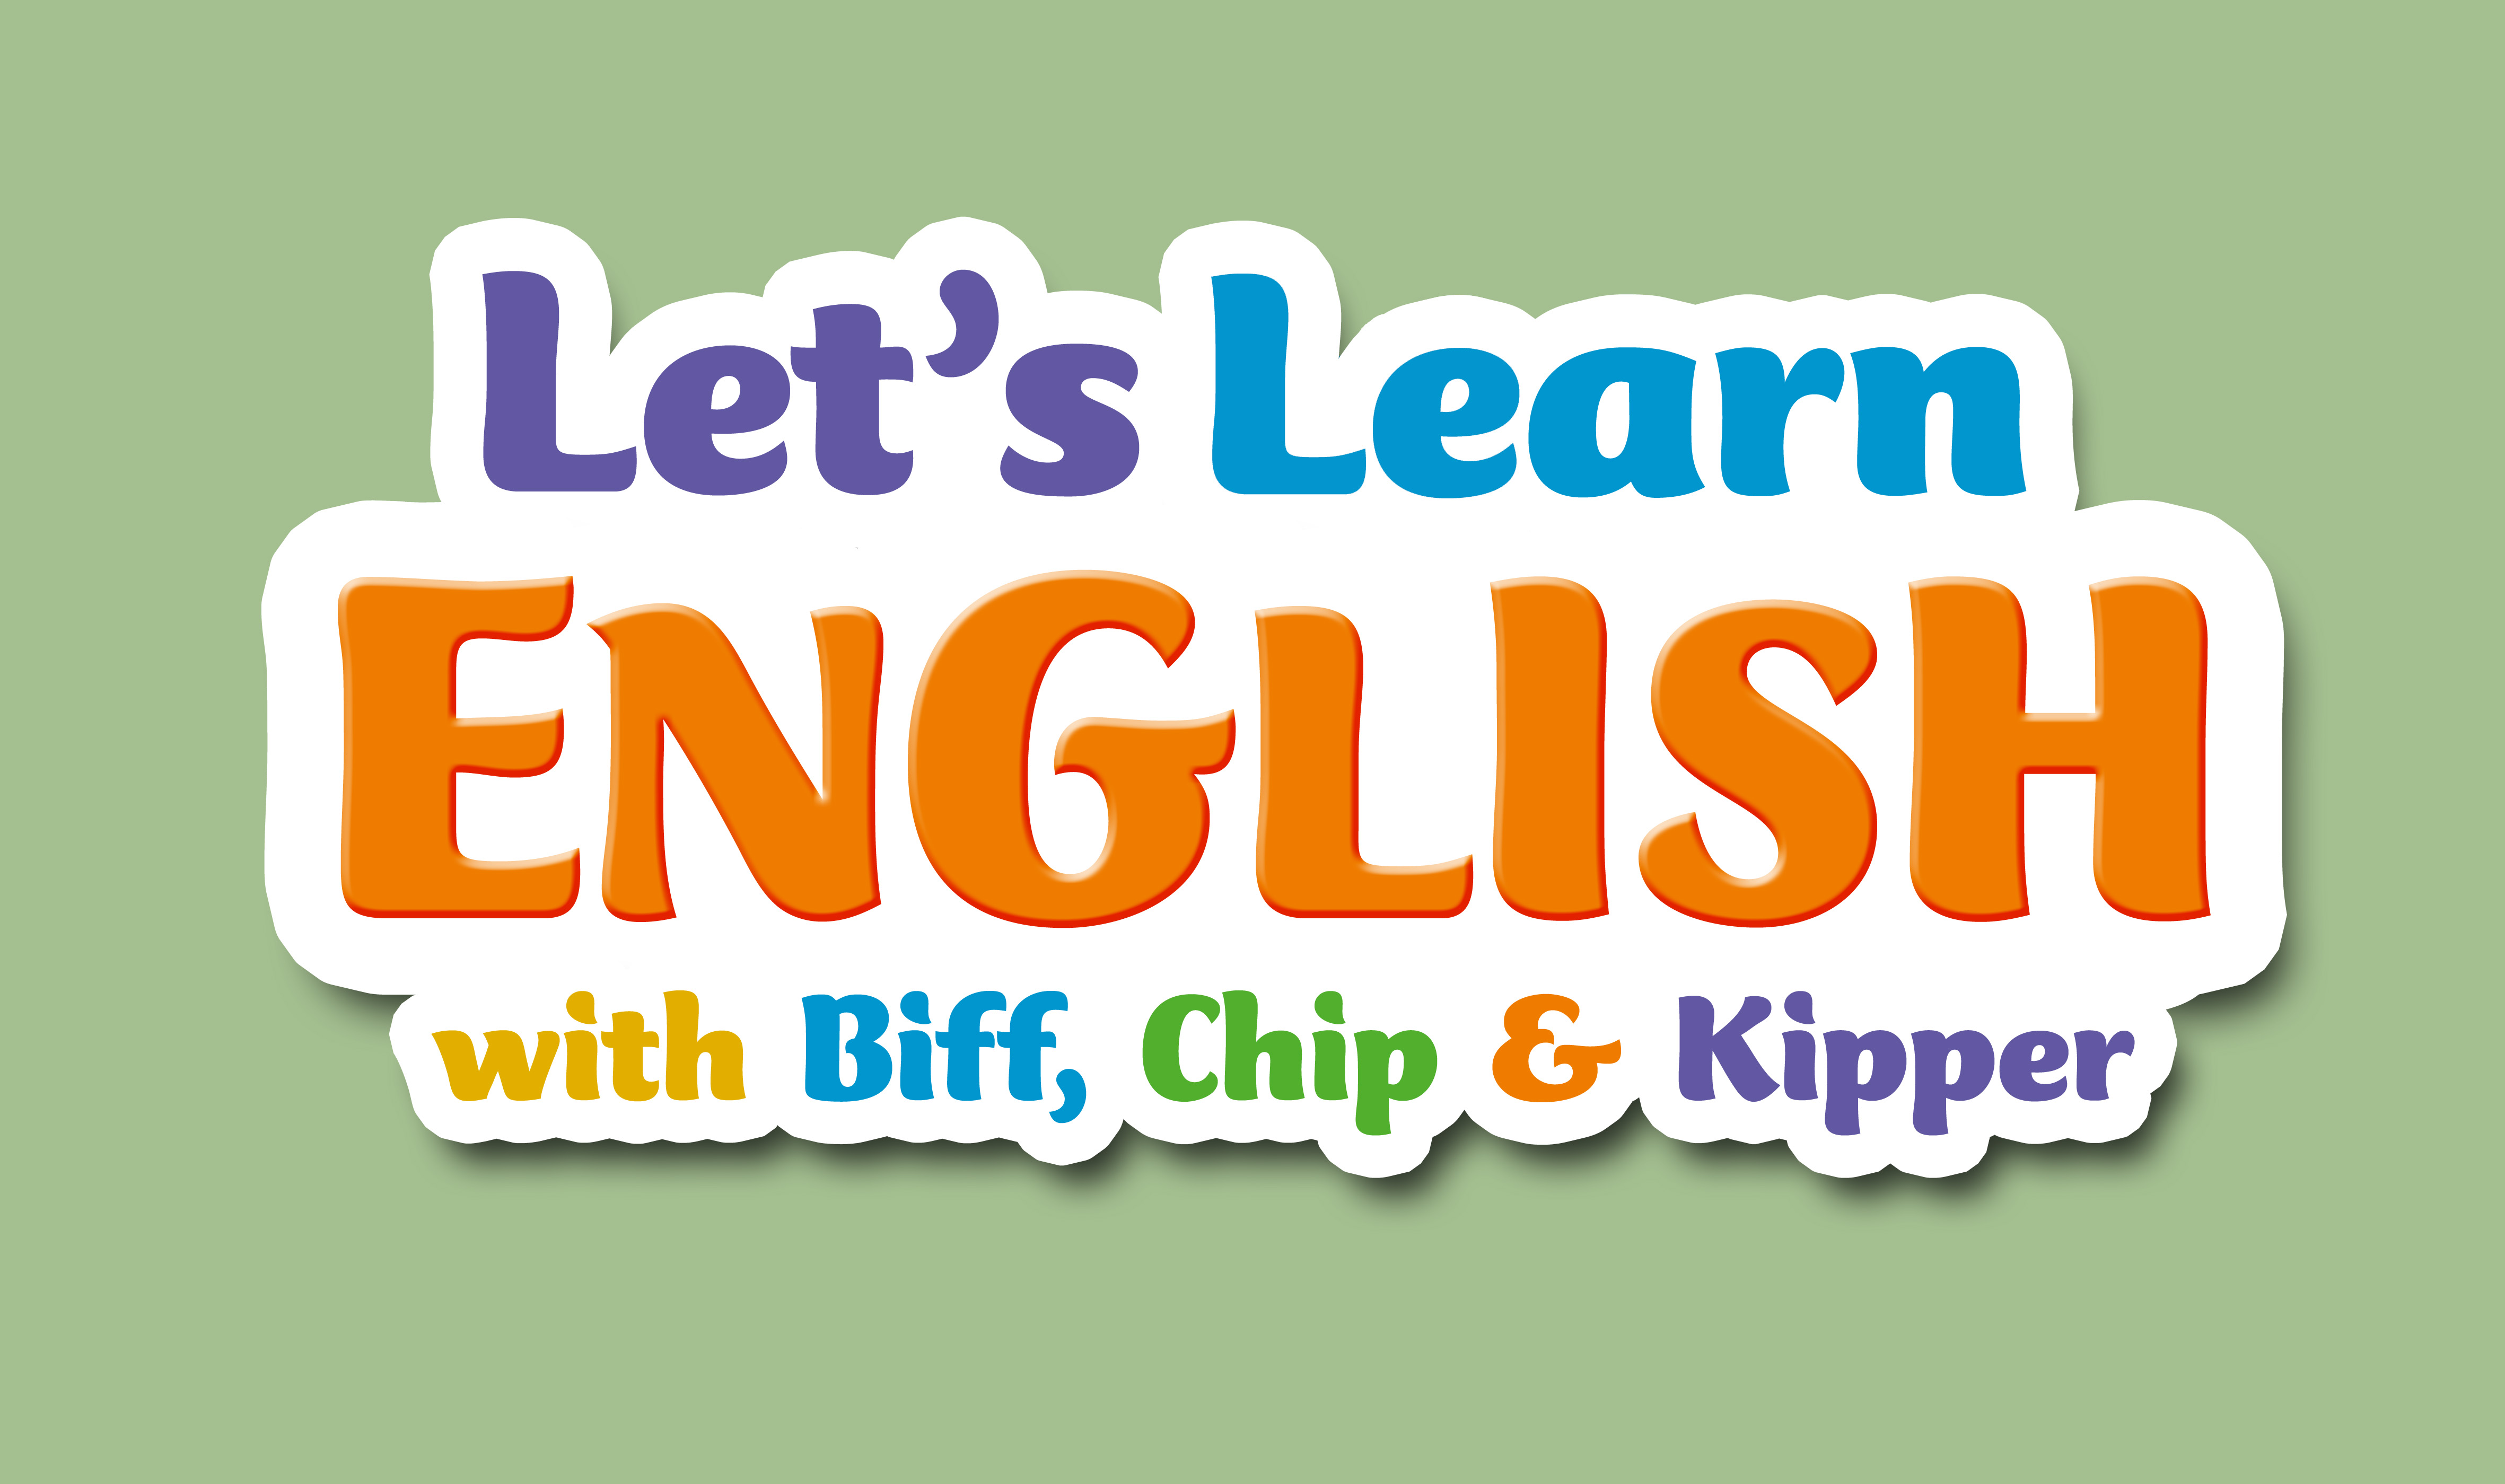 Let's learn some english